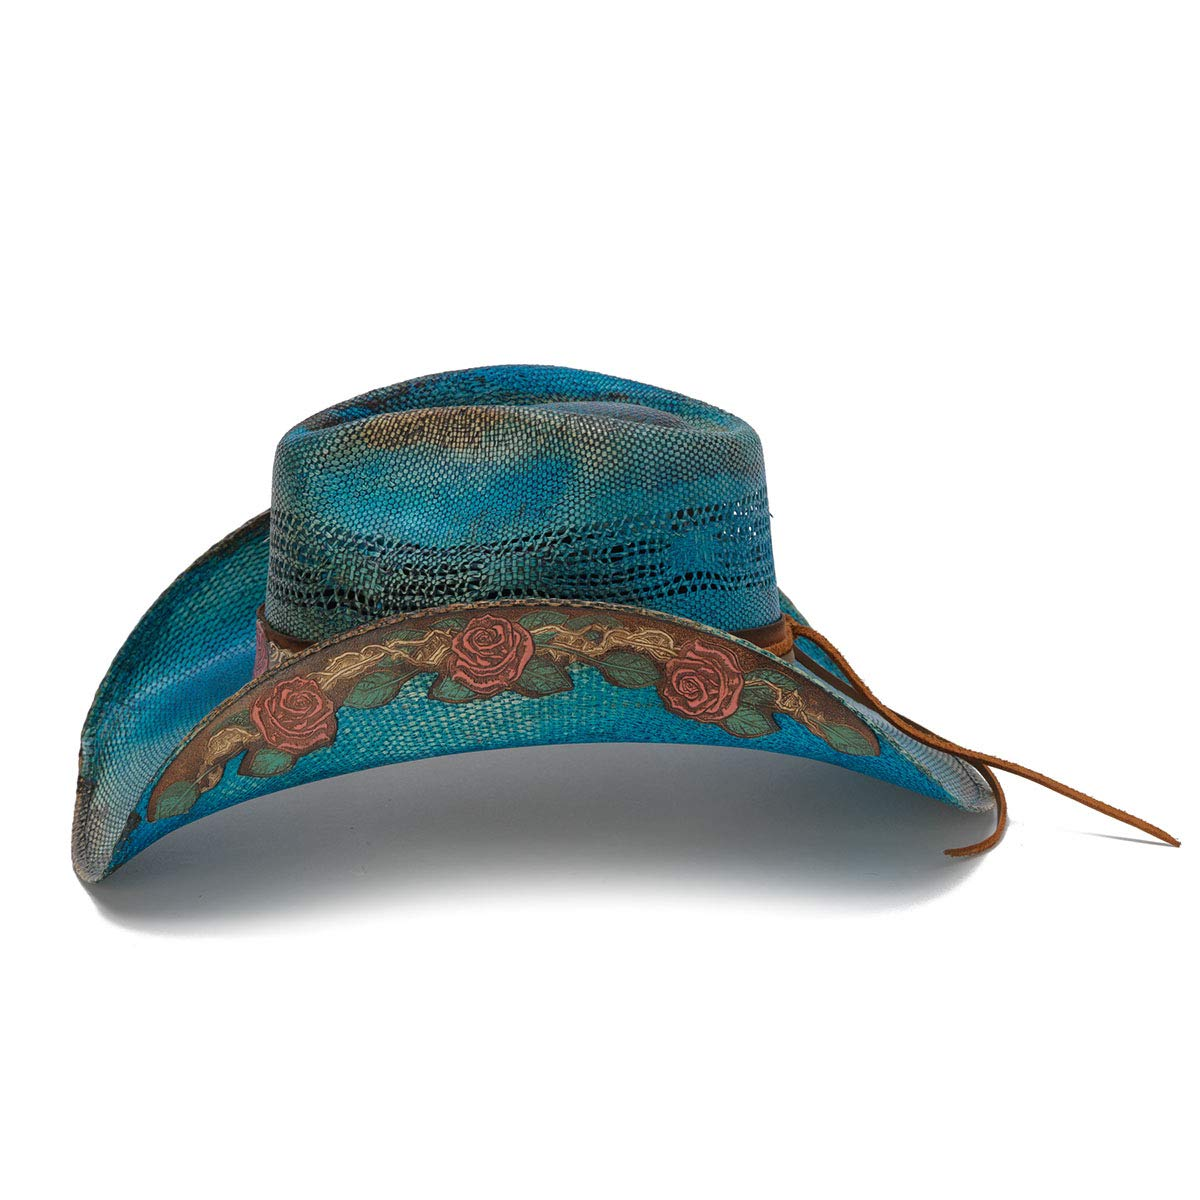 Stampede Hats Women's Love Story Rose Straw Western Hat M Blue by Stampede Hats (Image #3)